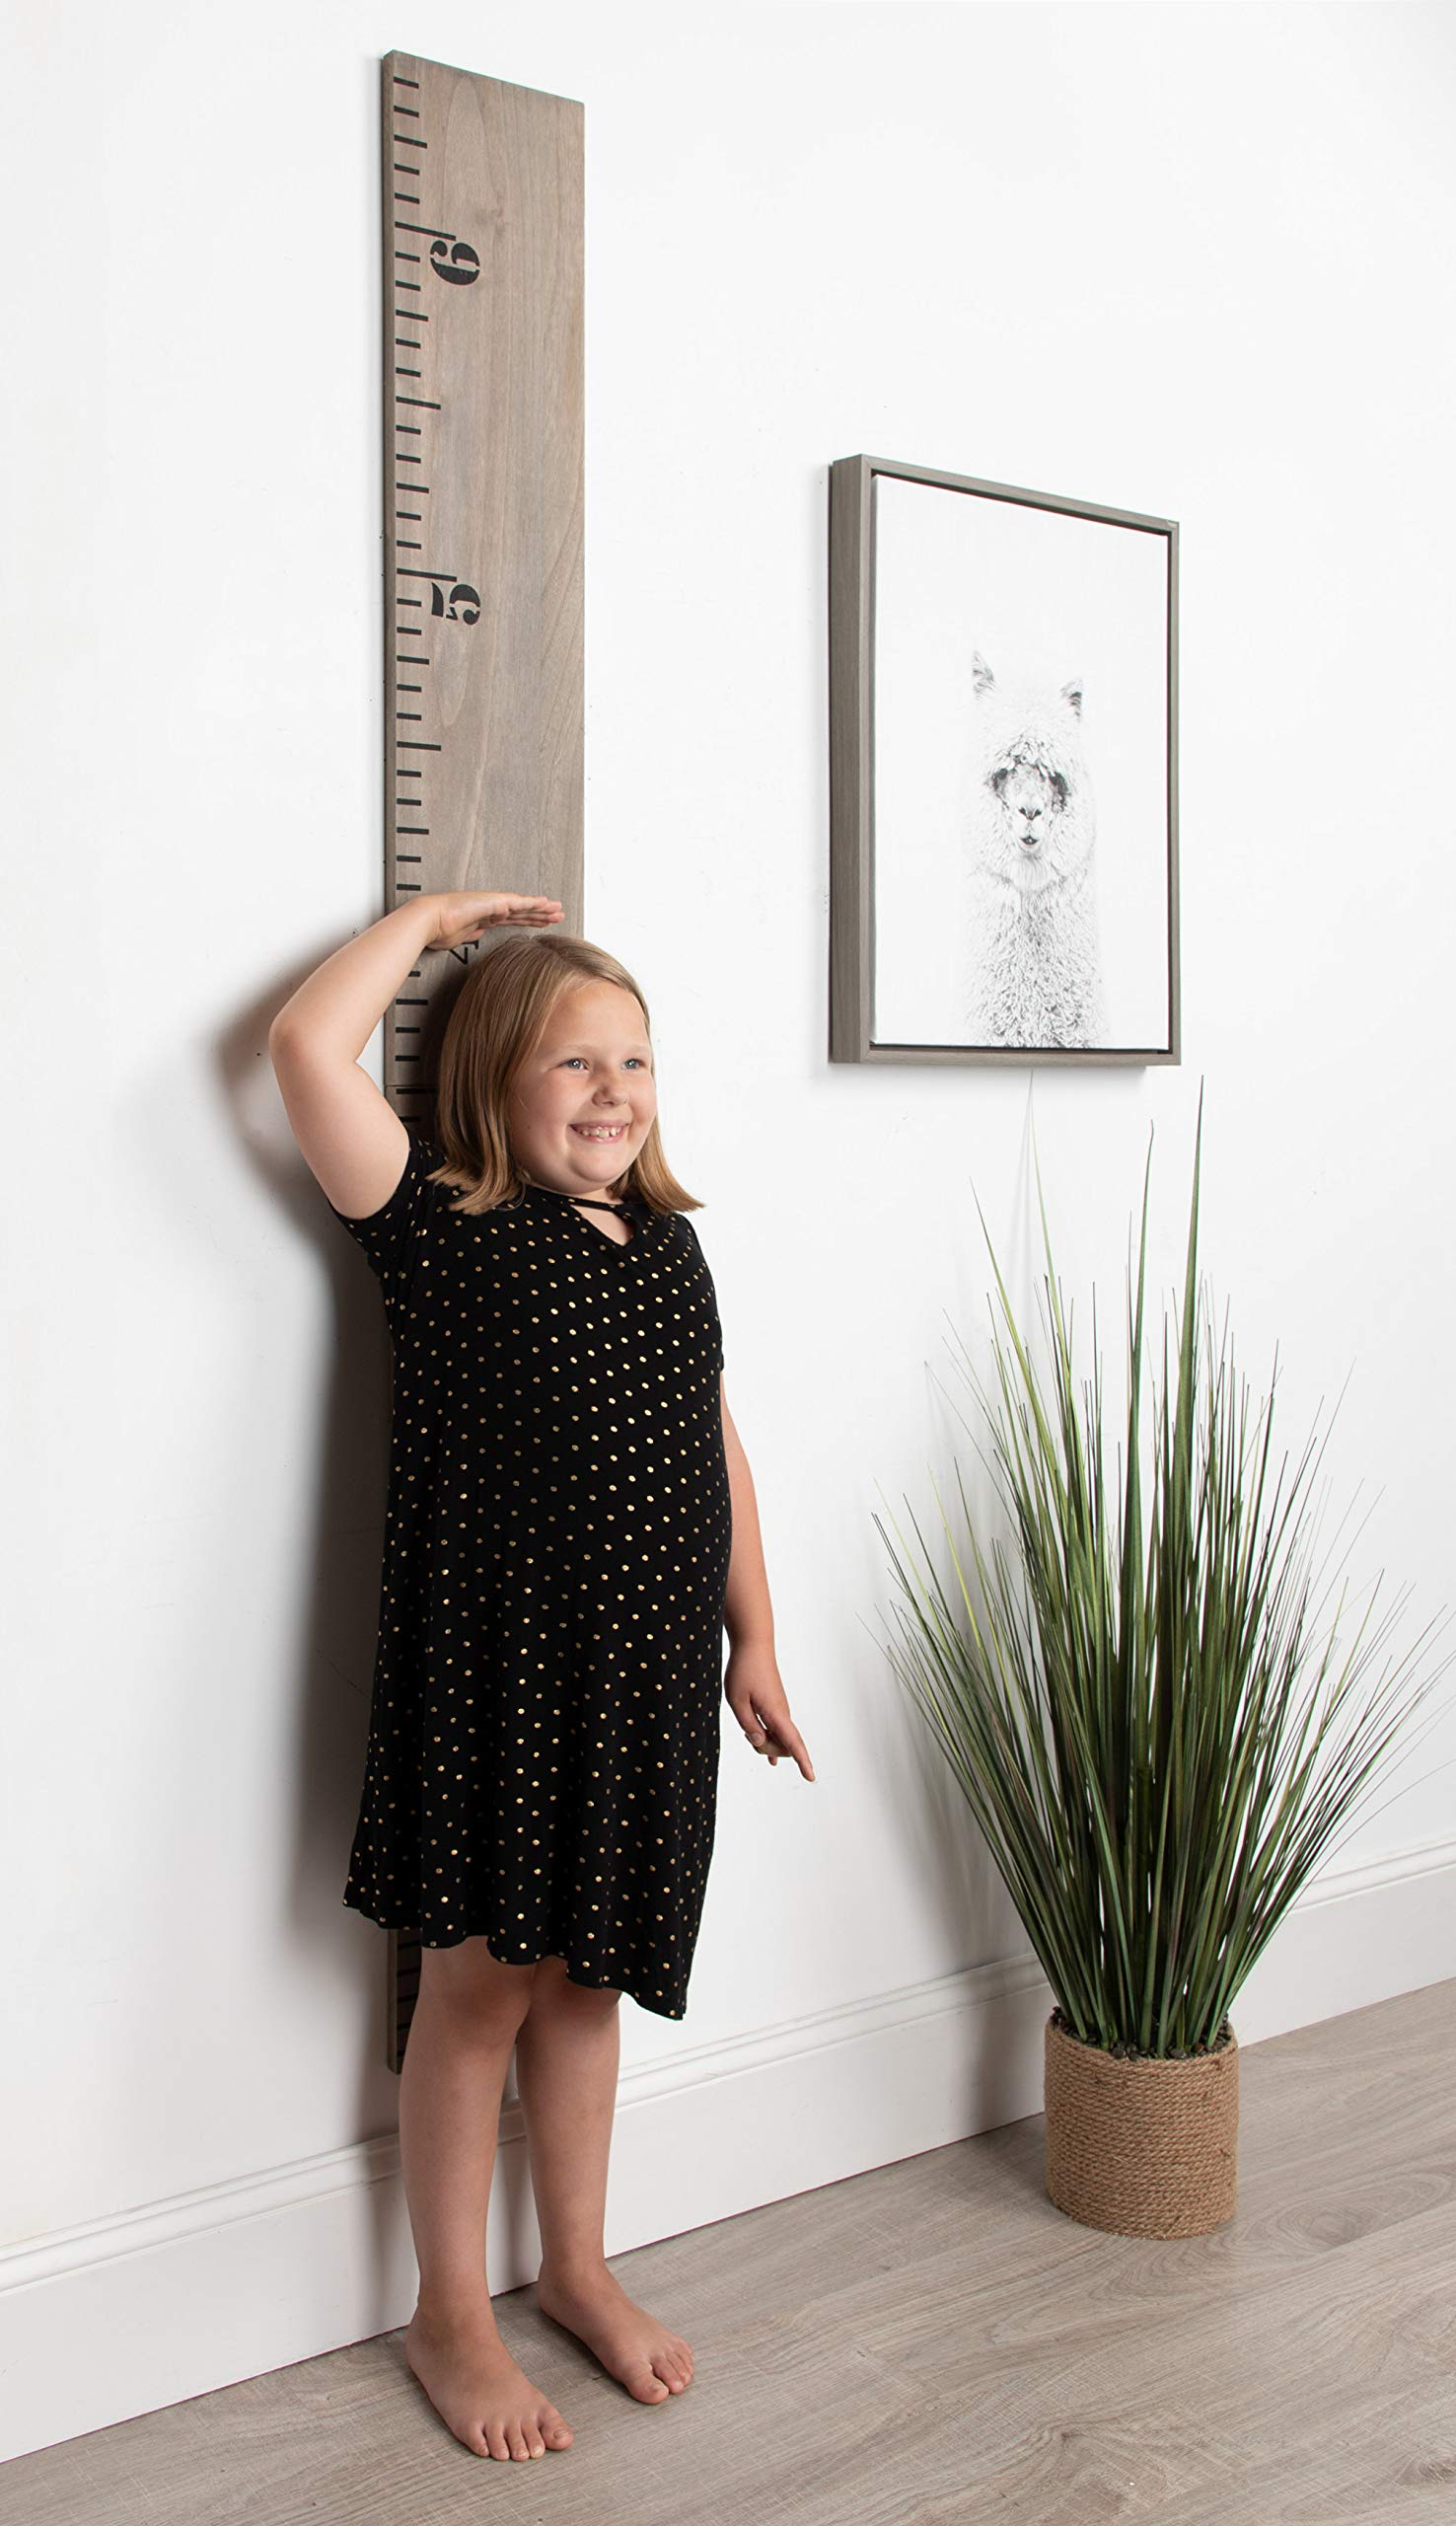 Kate and Laurel Growth Chart 6.5' Wood Wall Ruler, Gray by Kate and Laurel (Image #5)